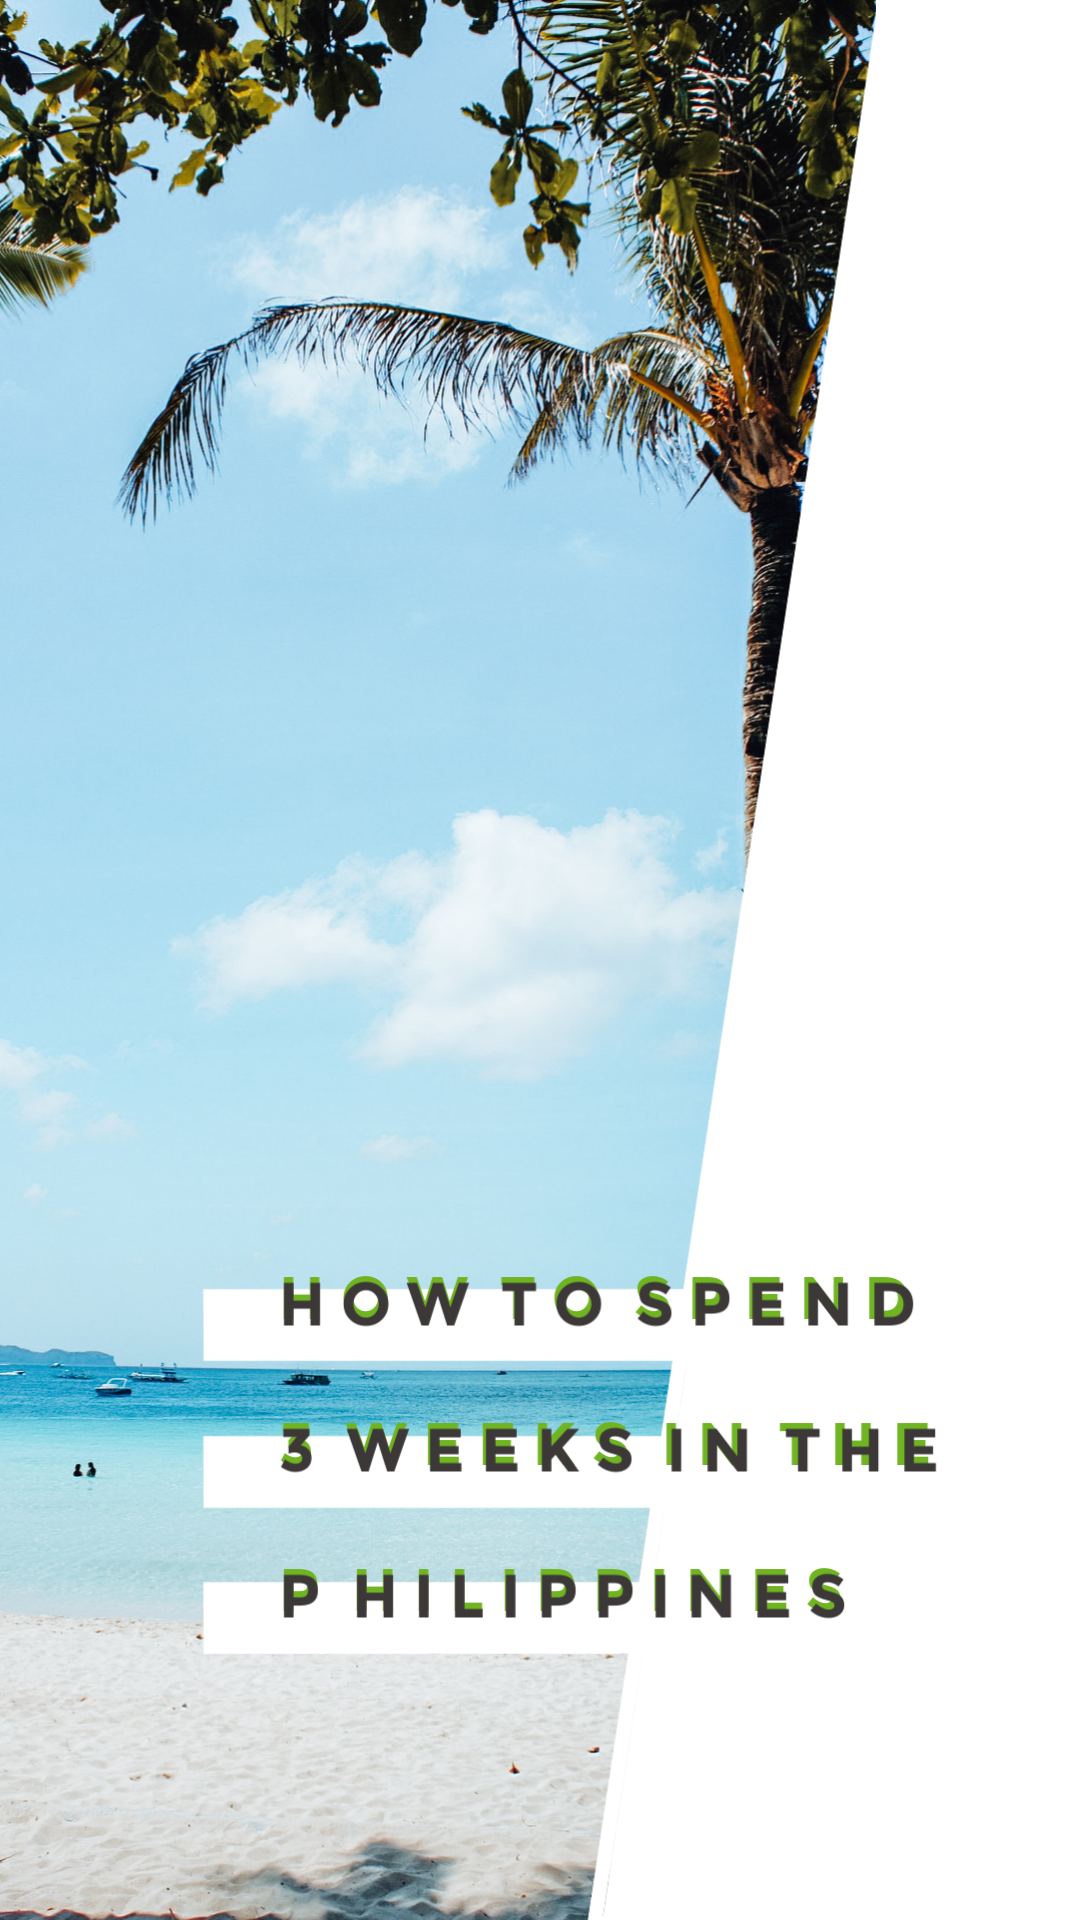 How to spend 3 weeks in the Philippines